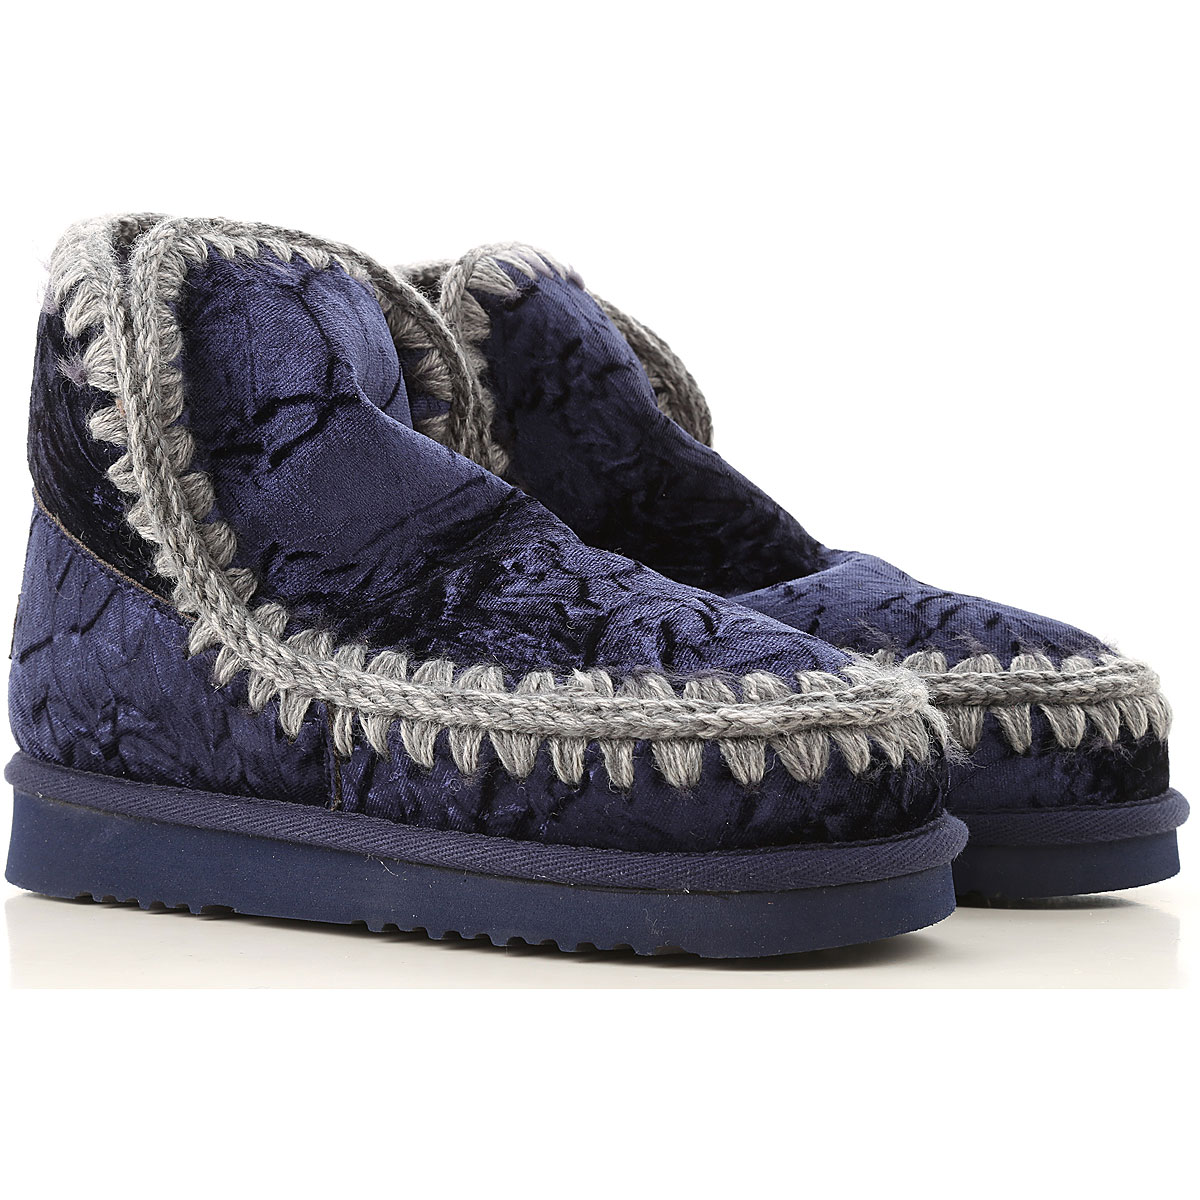 Image of Mou Boots for Women, Booties, Velvet Blue, Velvet, 2017, EUR 36 - UK 3 - USA 5.5 EUR 37 - UK 4 - USA 6.5 EUR 38 - UK 5 - USA 7.5 EUR 39 - UK 6 - USA 8.5 EUR 40 - UK 7 - USA 9.5